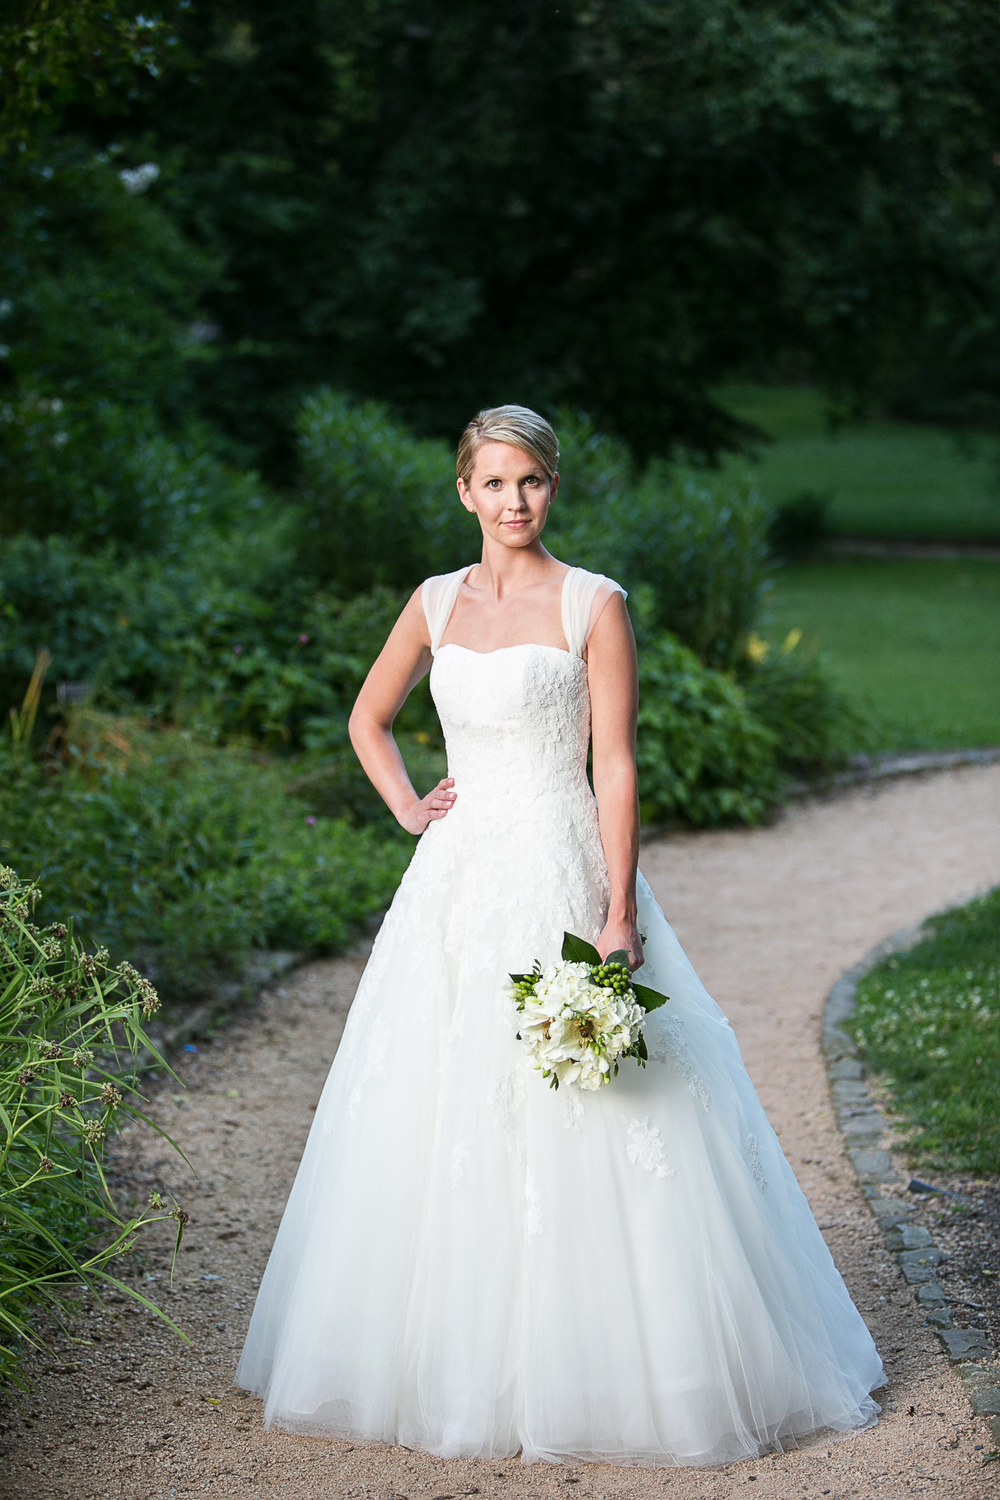 Daughtridge_bridal-061712-202.jpg